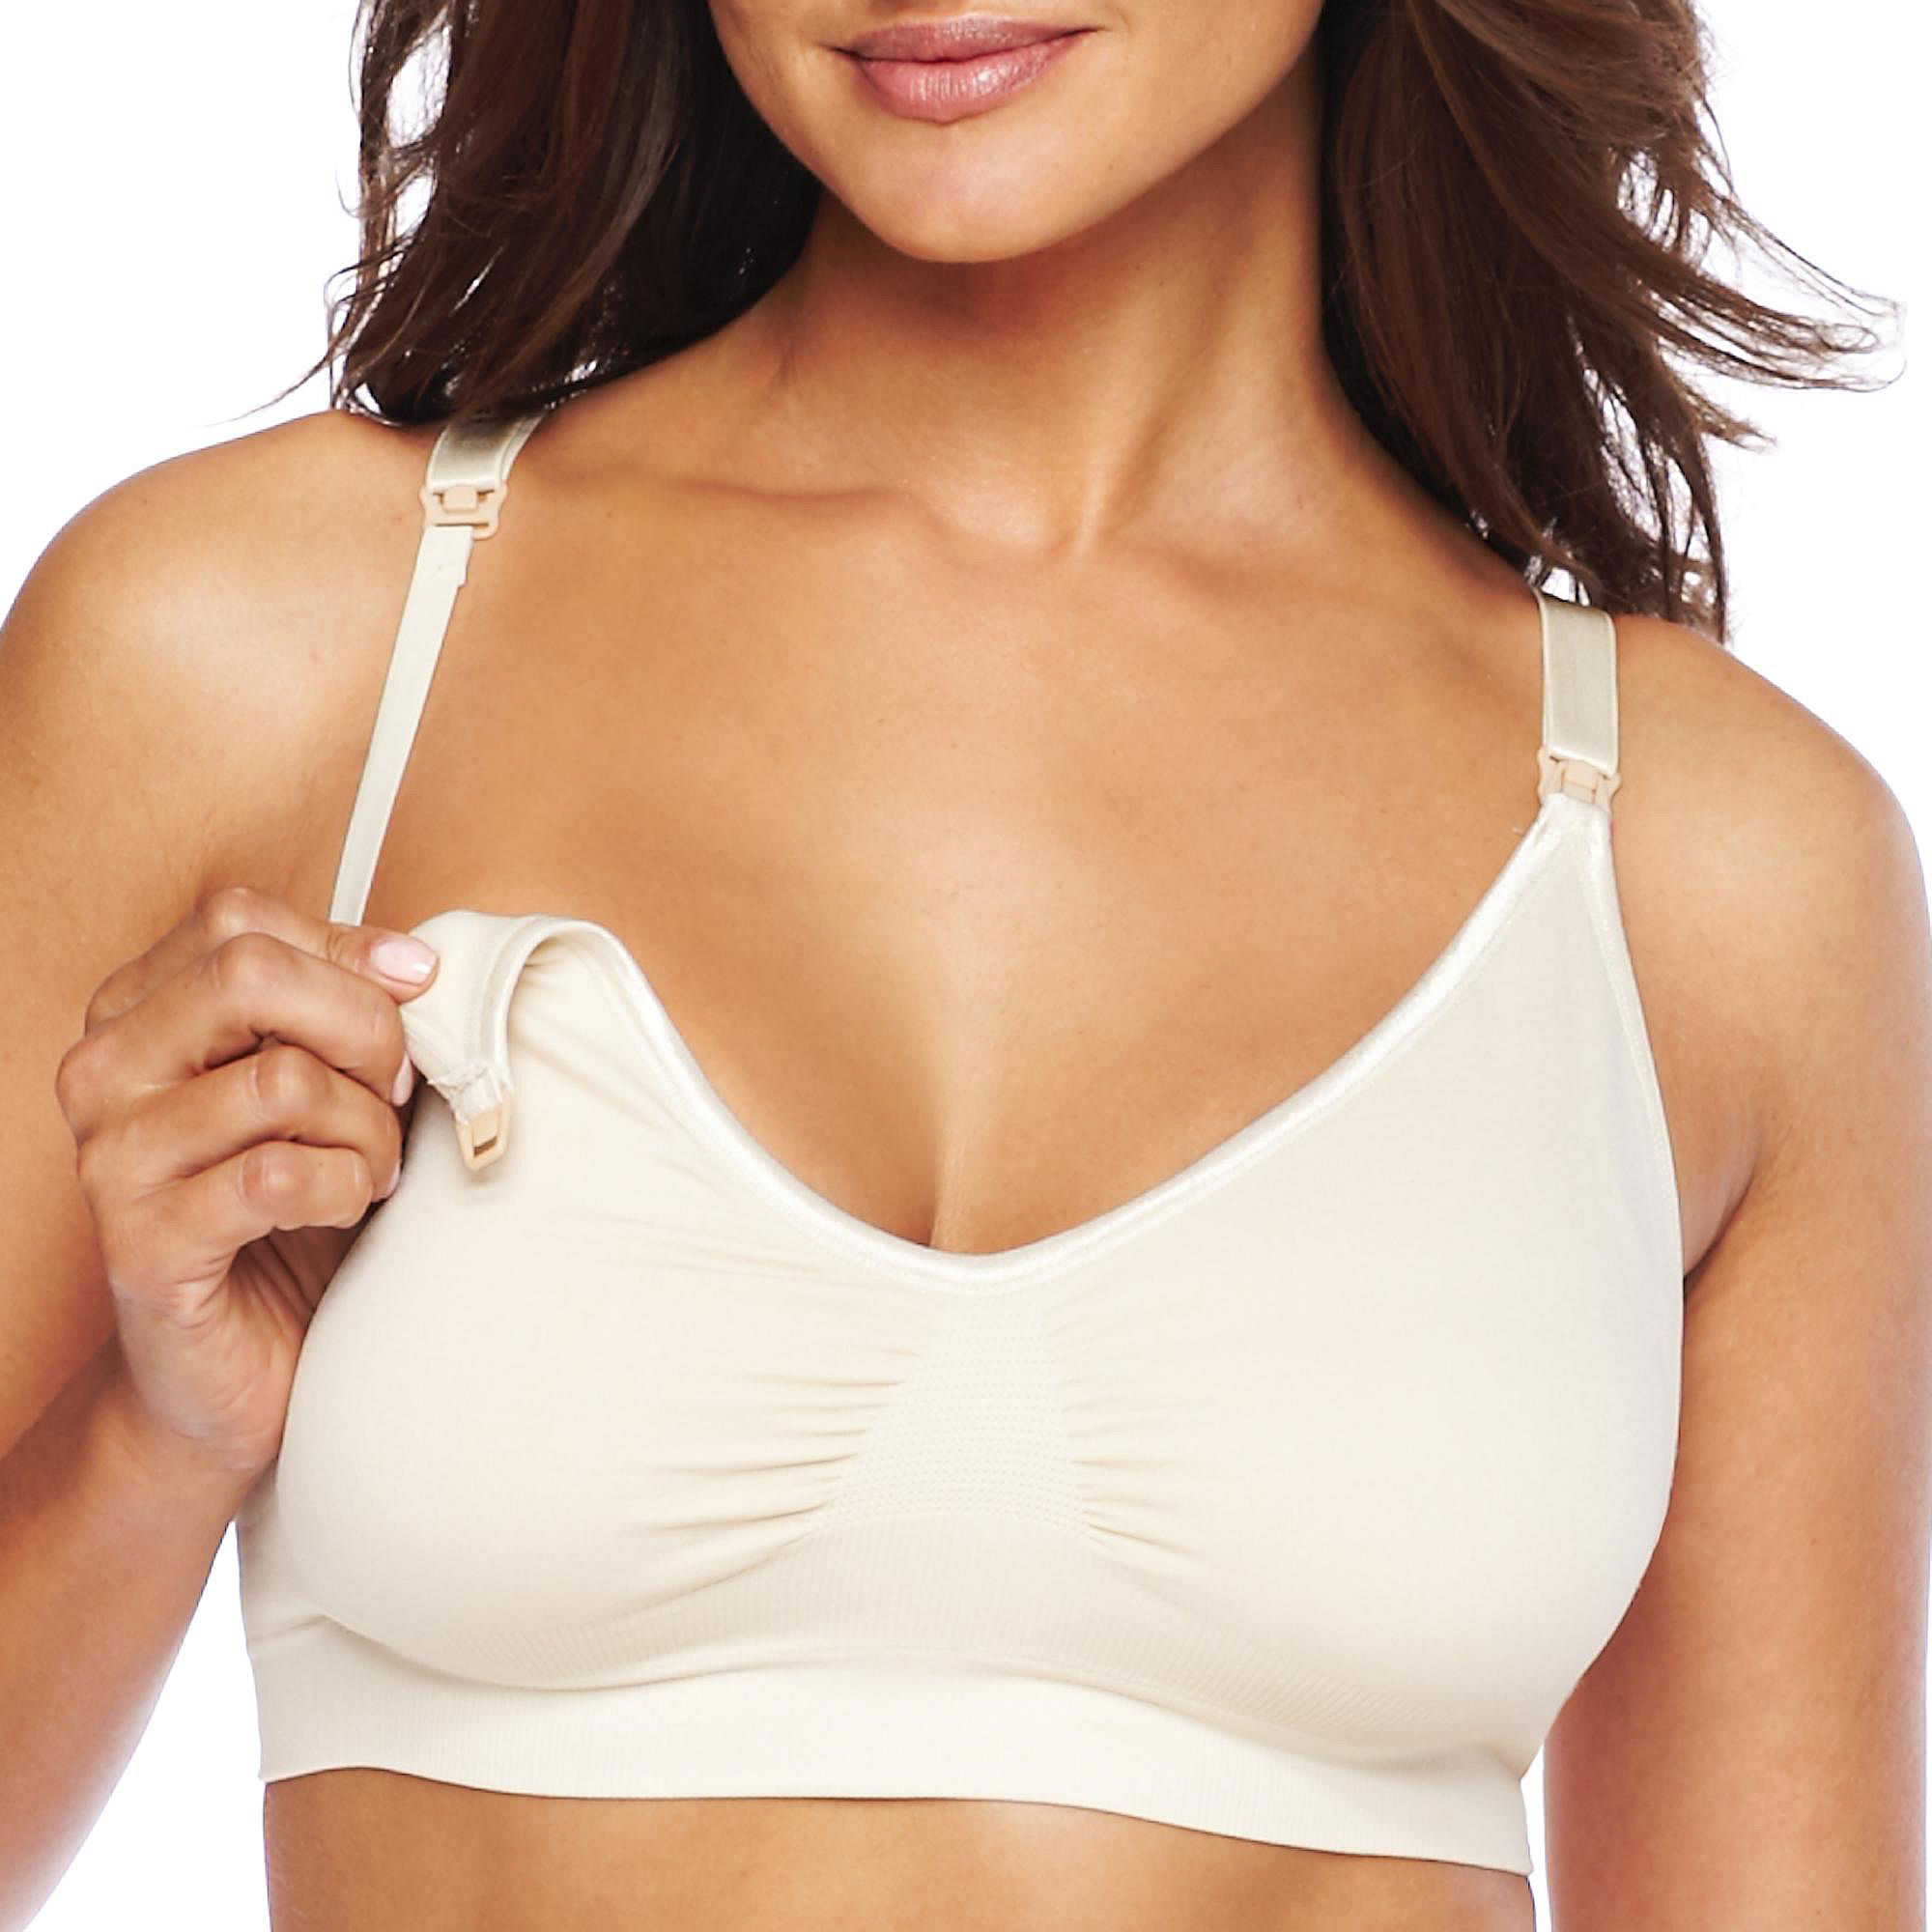 Spencer Seamless Comfort Nursing Bra Bandeau | Underwear and Clothing